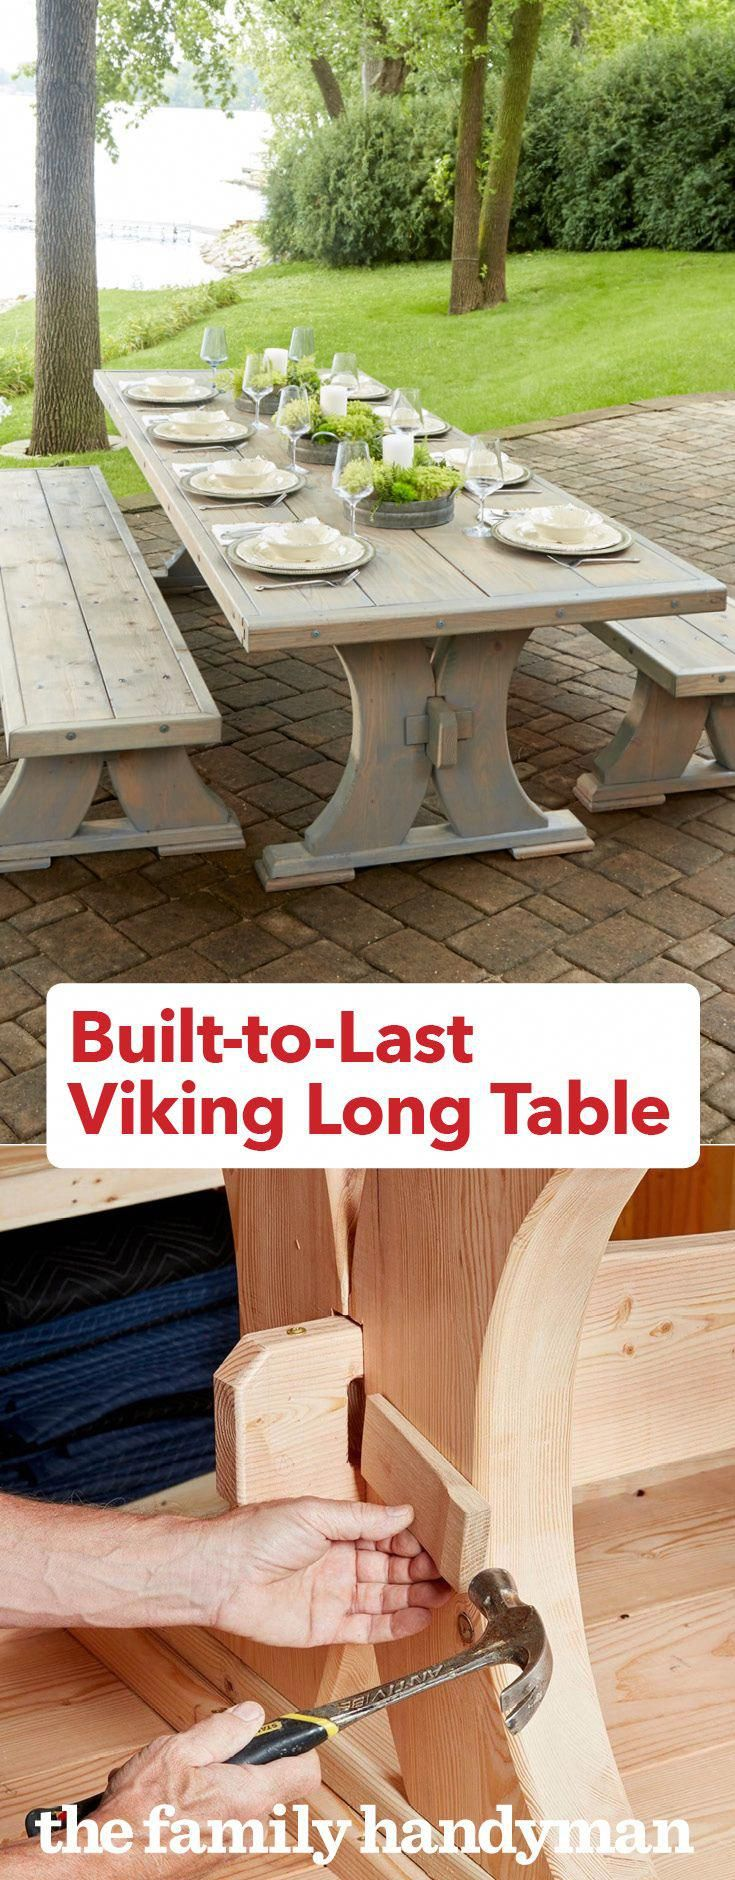 BuilttoLast Viking Long Table Woodworking projects